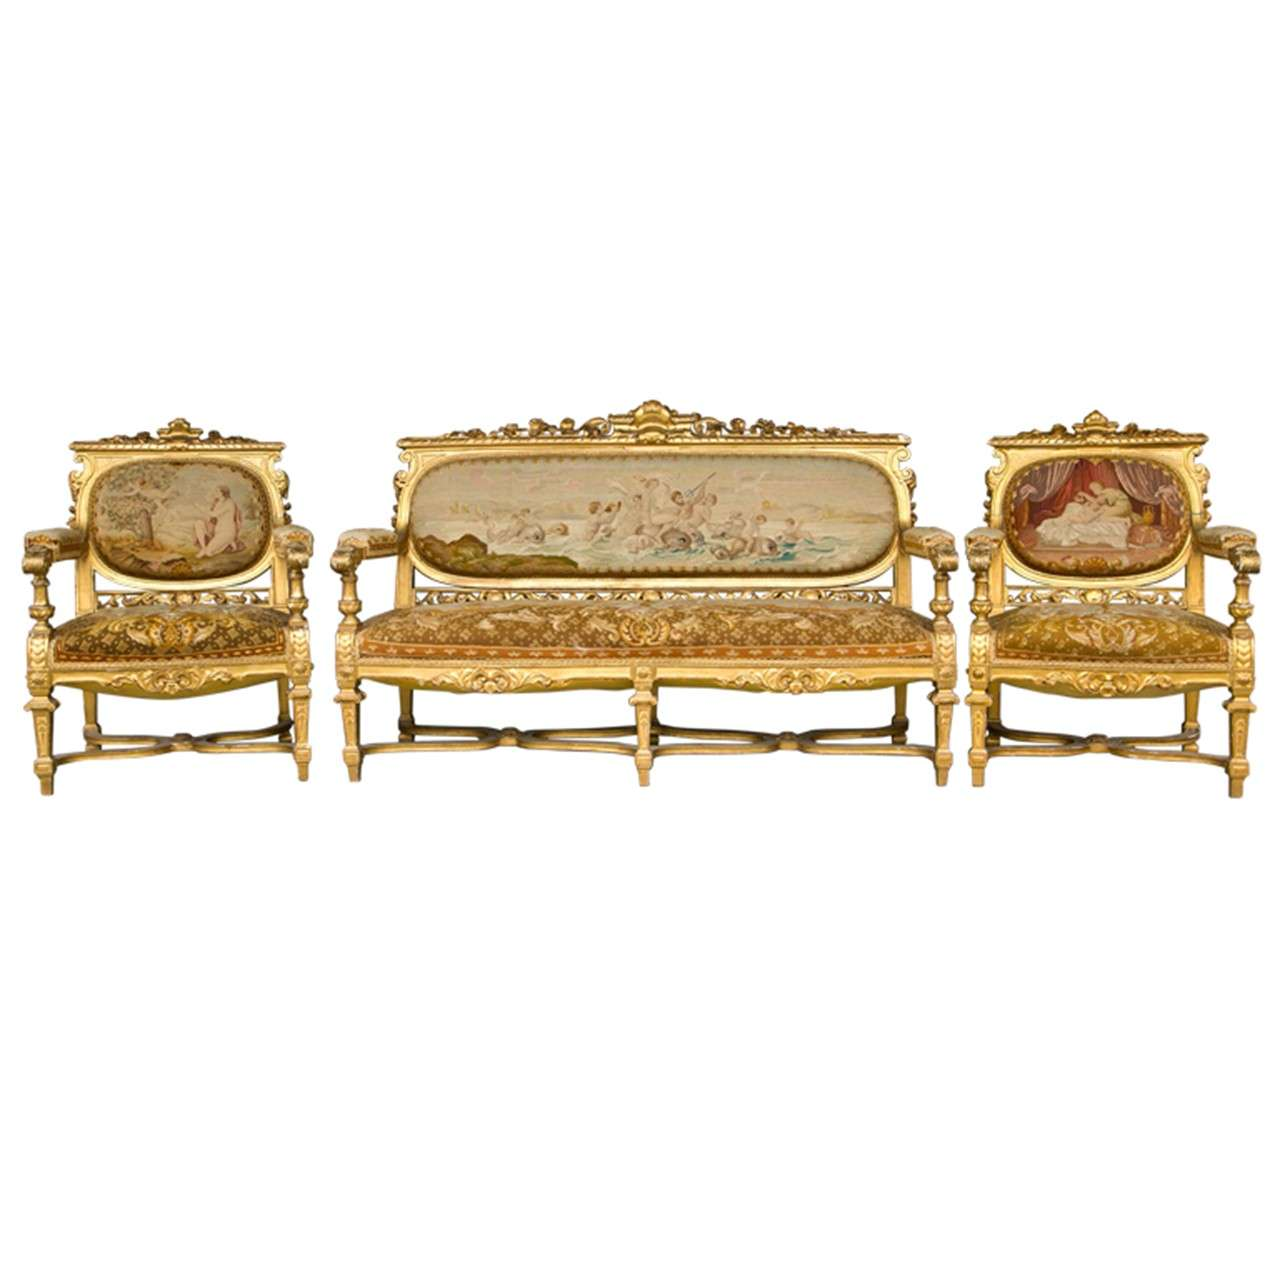 Louis xvi style 3 piece gilded salon set at 1stdibs for Salon 3 pieces